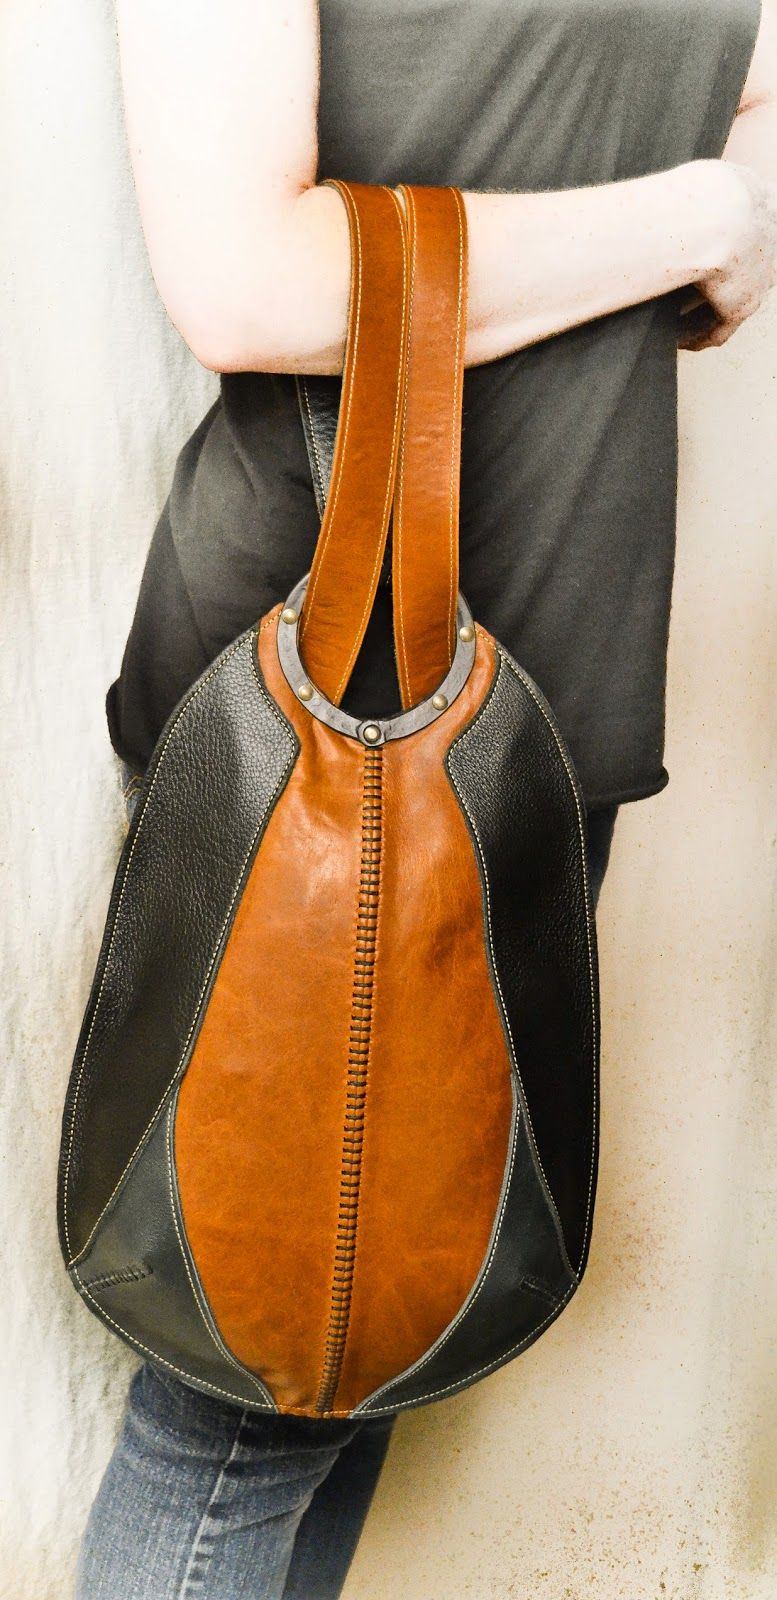 Leather Handbags In All Kinds Of Interesting Designs By Chemical Wedding